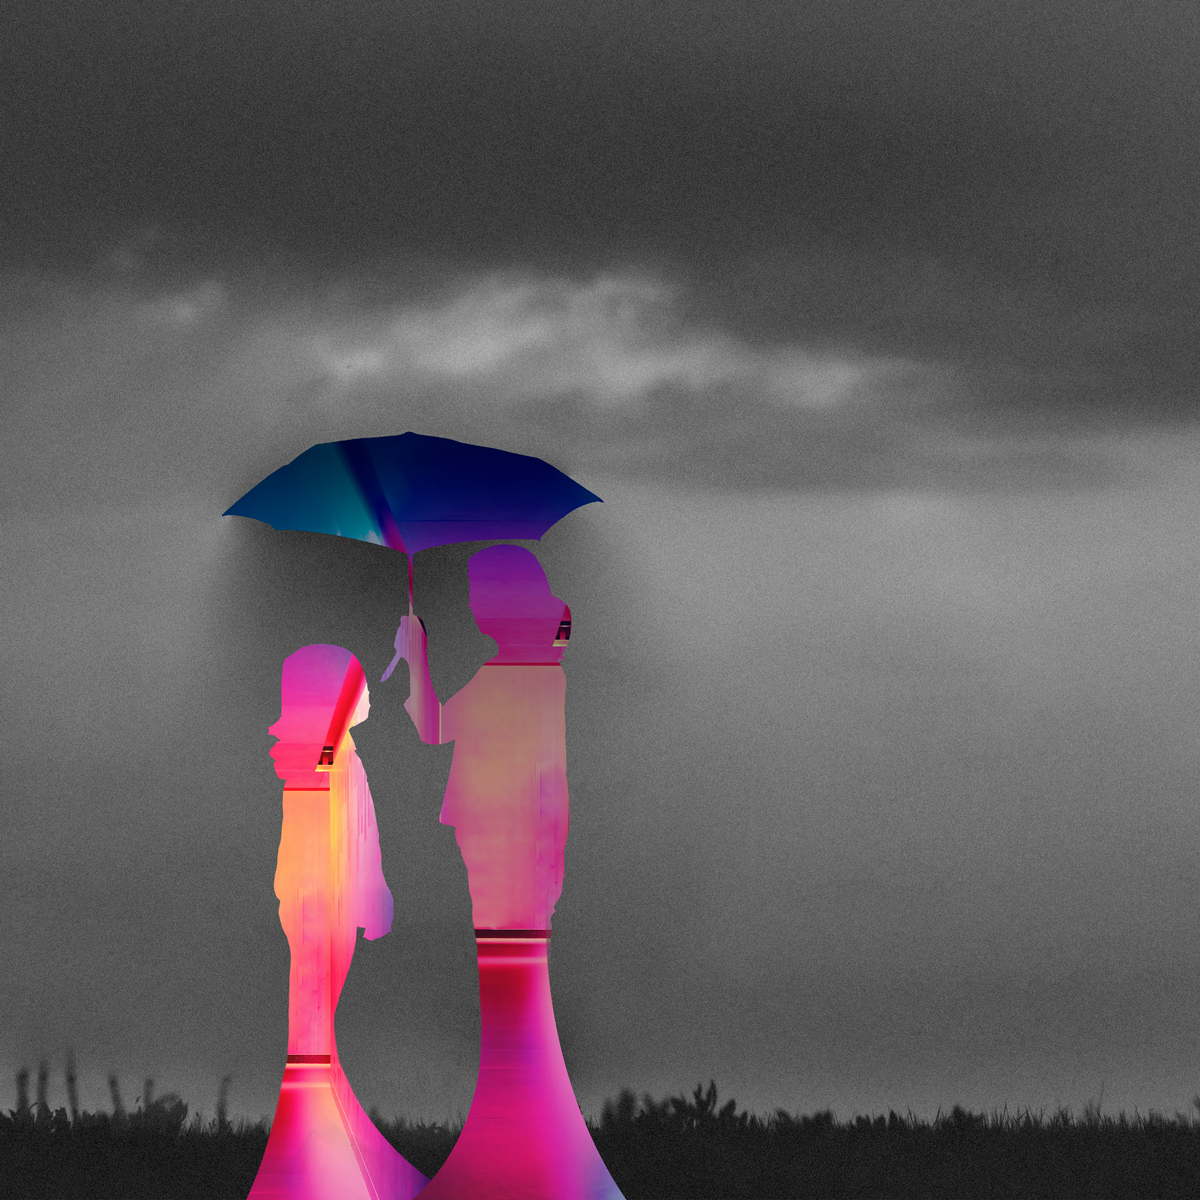 Mother, daughter under umbrella, colorful silhouettes